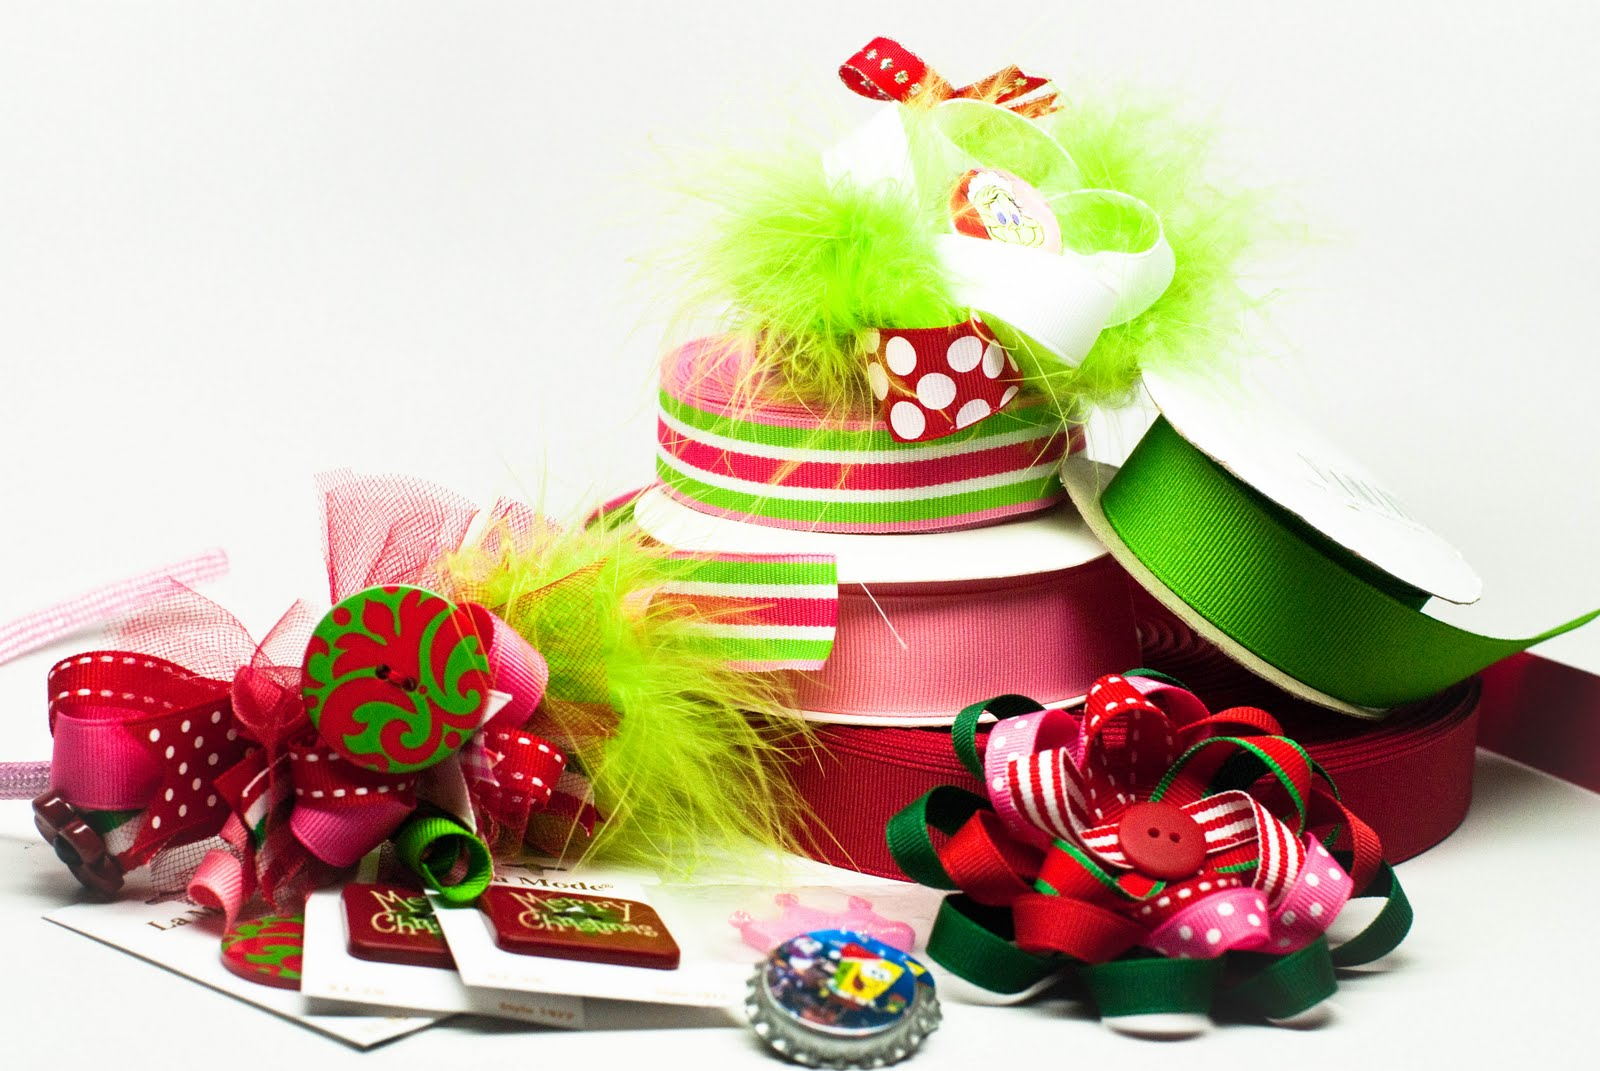 Designing hair bows and fabric flowers for the holidays